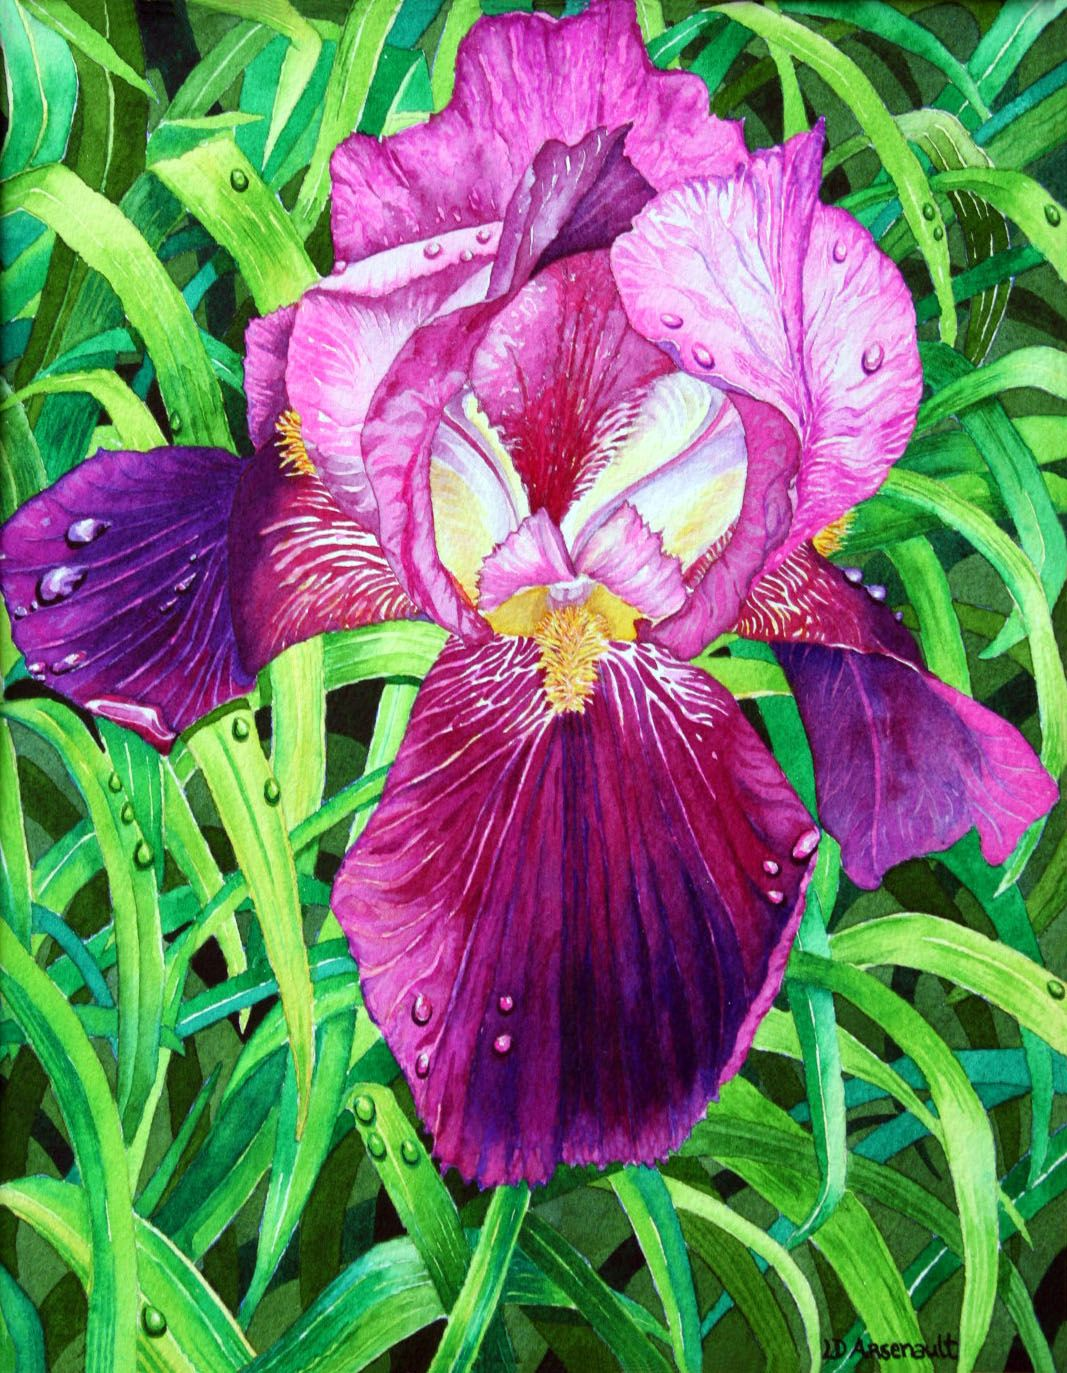 All The Colors Of The Iris Flower Iris Ii 10 X 8 Arches Watercolor